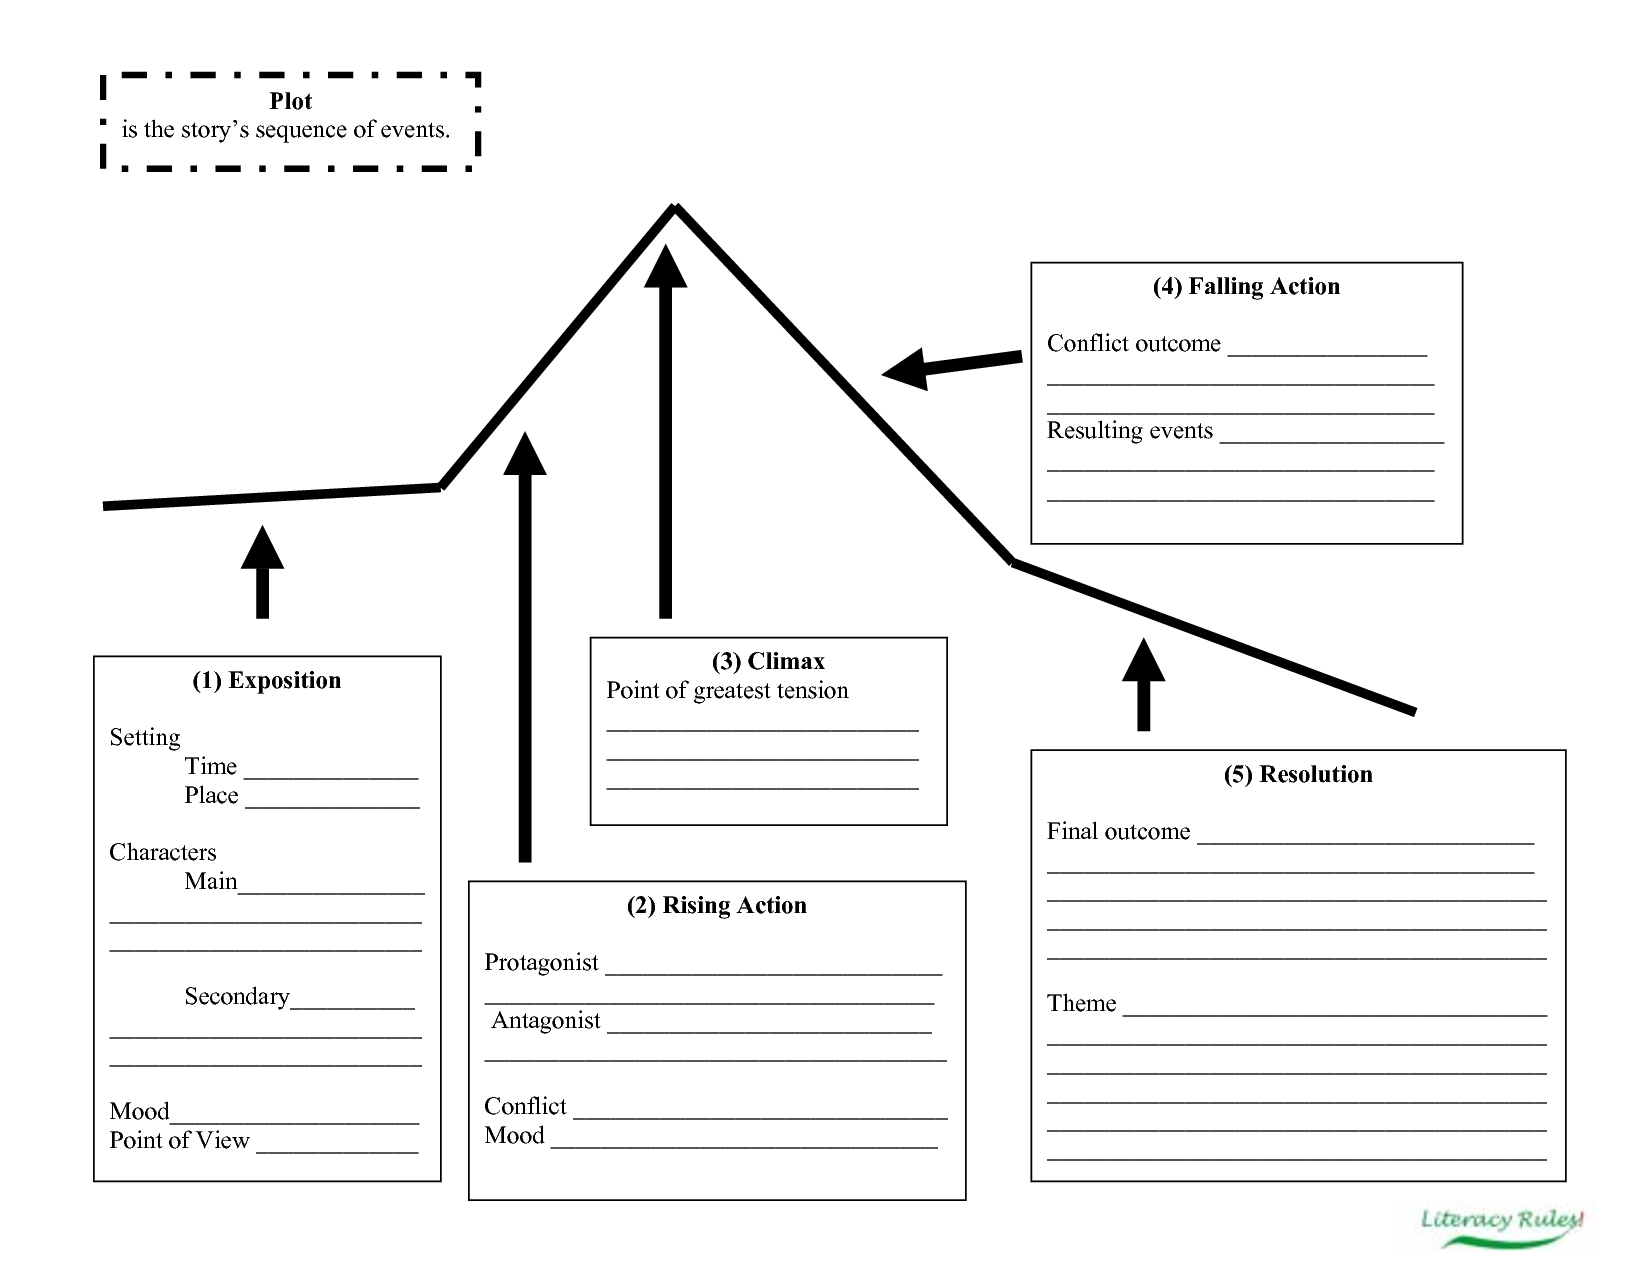 graphic organizer - this is a mountain shaped story plot map used to